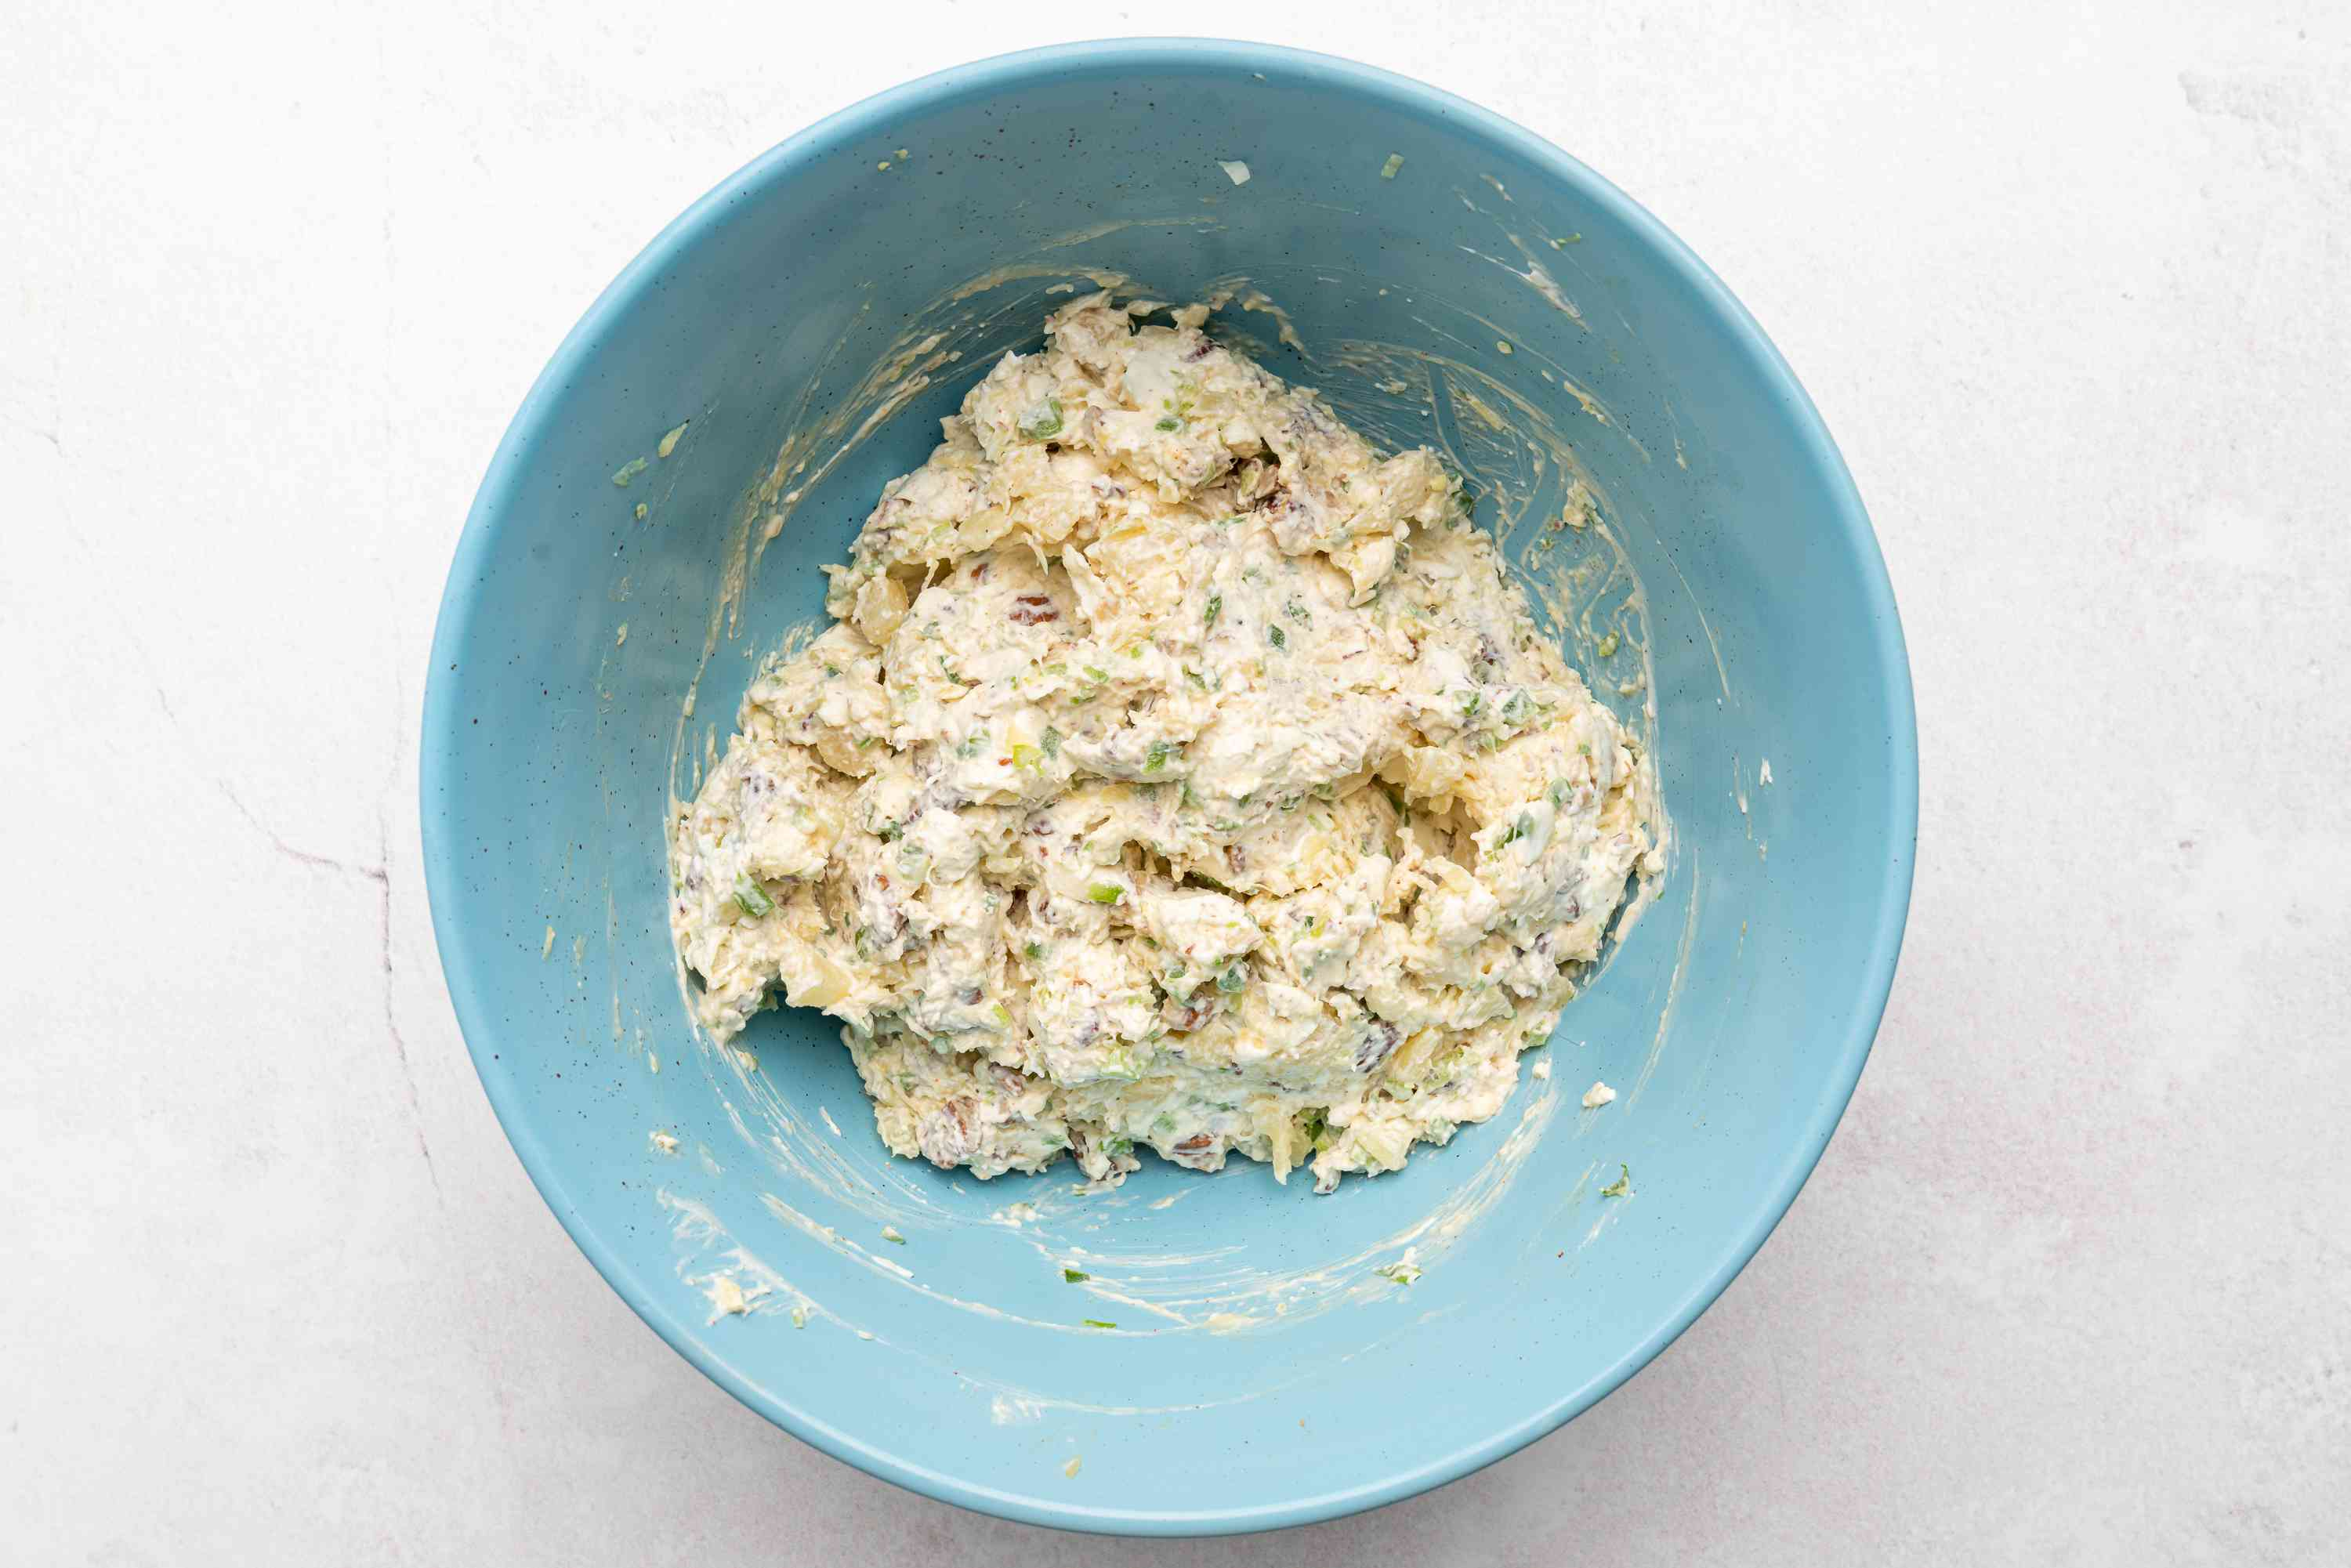 cream cheese, drained crushed pineapple, chopped bell pepper, and chopped green onion in a bowl